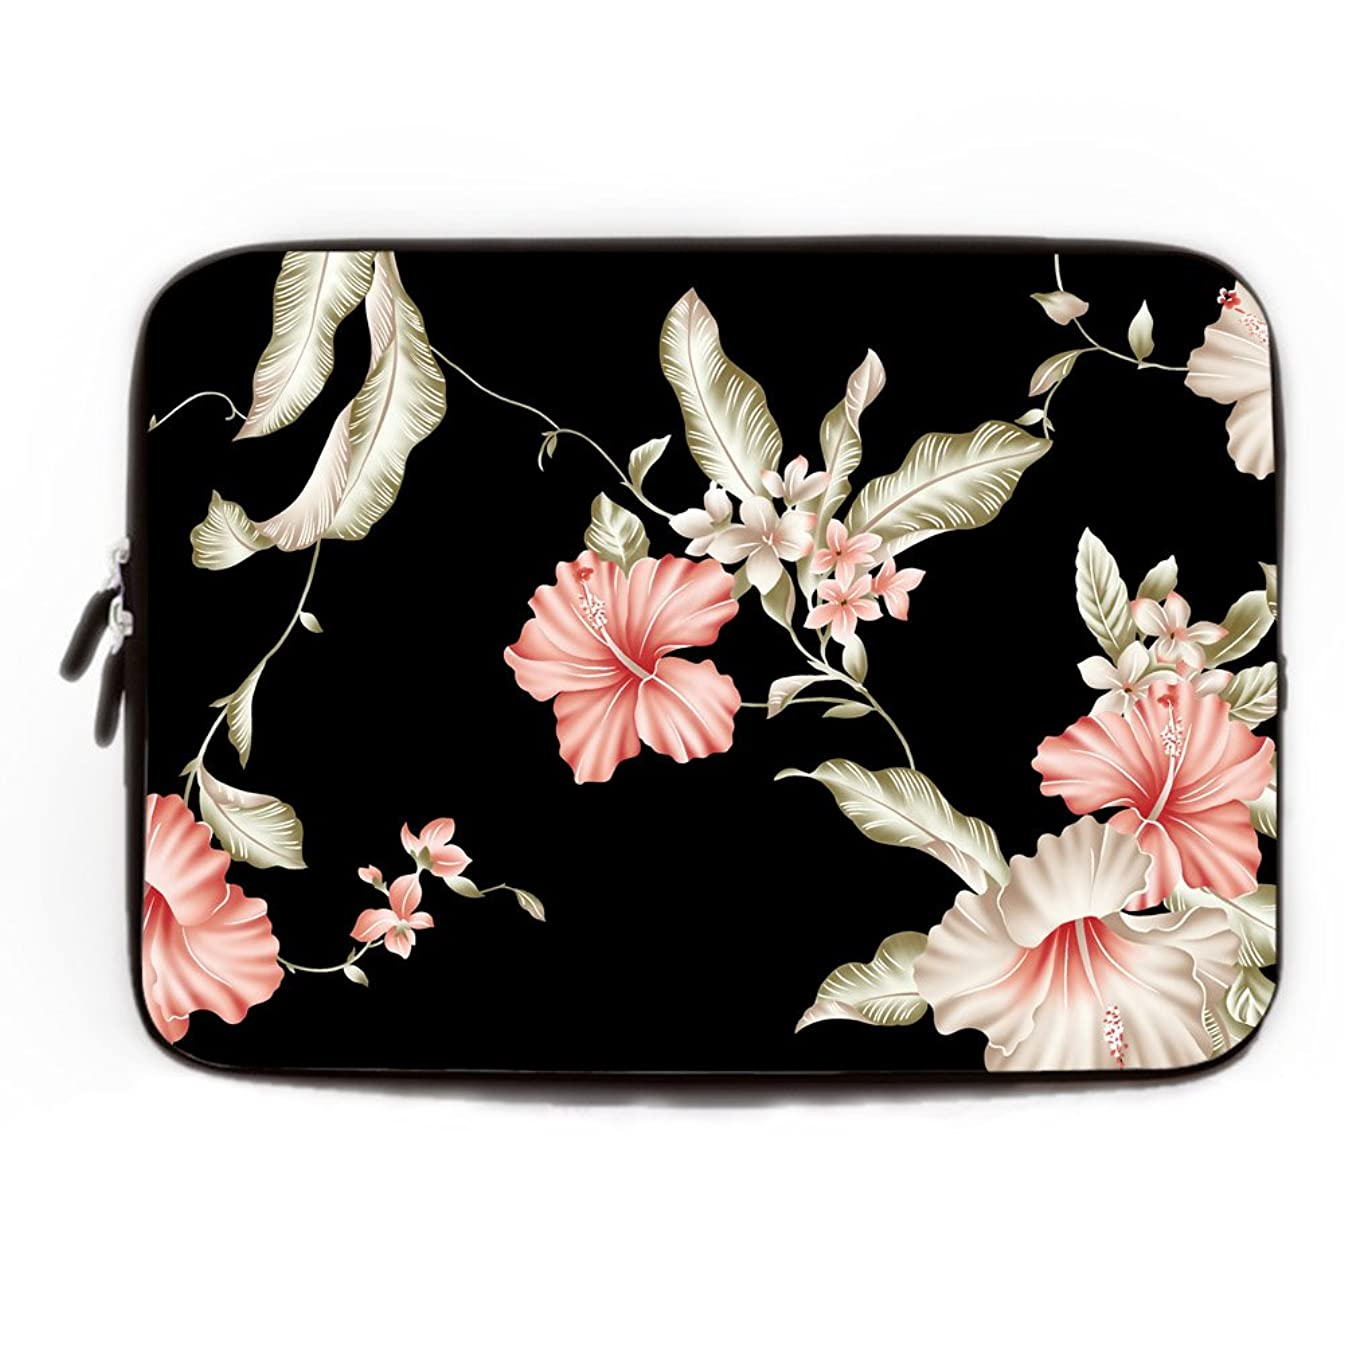 Funny Rose Flower Computer Cases for Laptops 15.6 Floral Computer Sleeve 15 15.4 Inch Soft Waterproof Neoprene Laptop Sleeve Gifts Fashionable Pink and Black Laptop Cases 15.6 inch